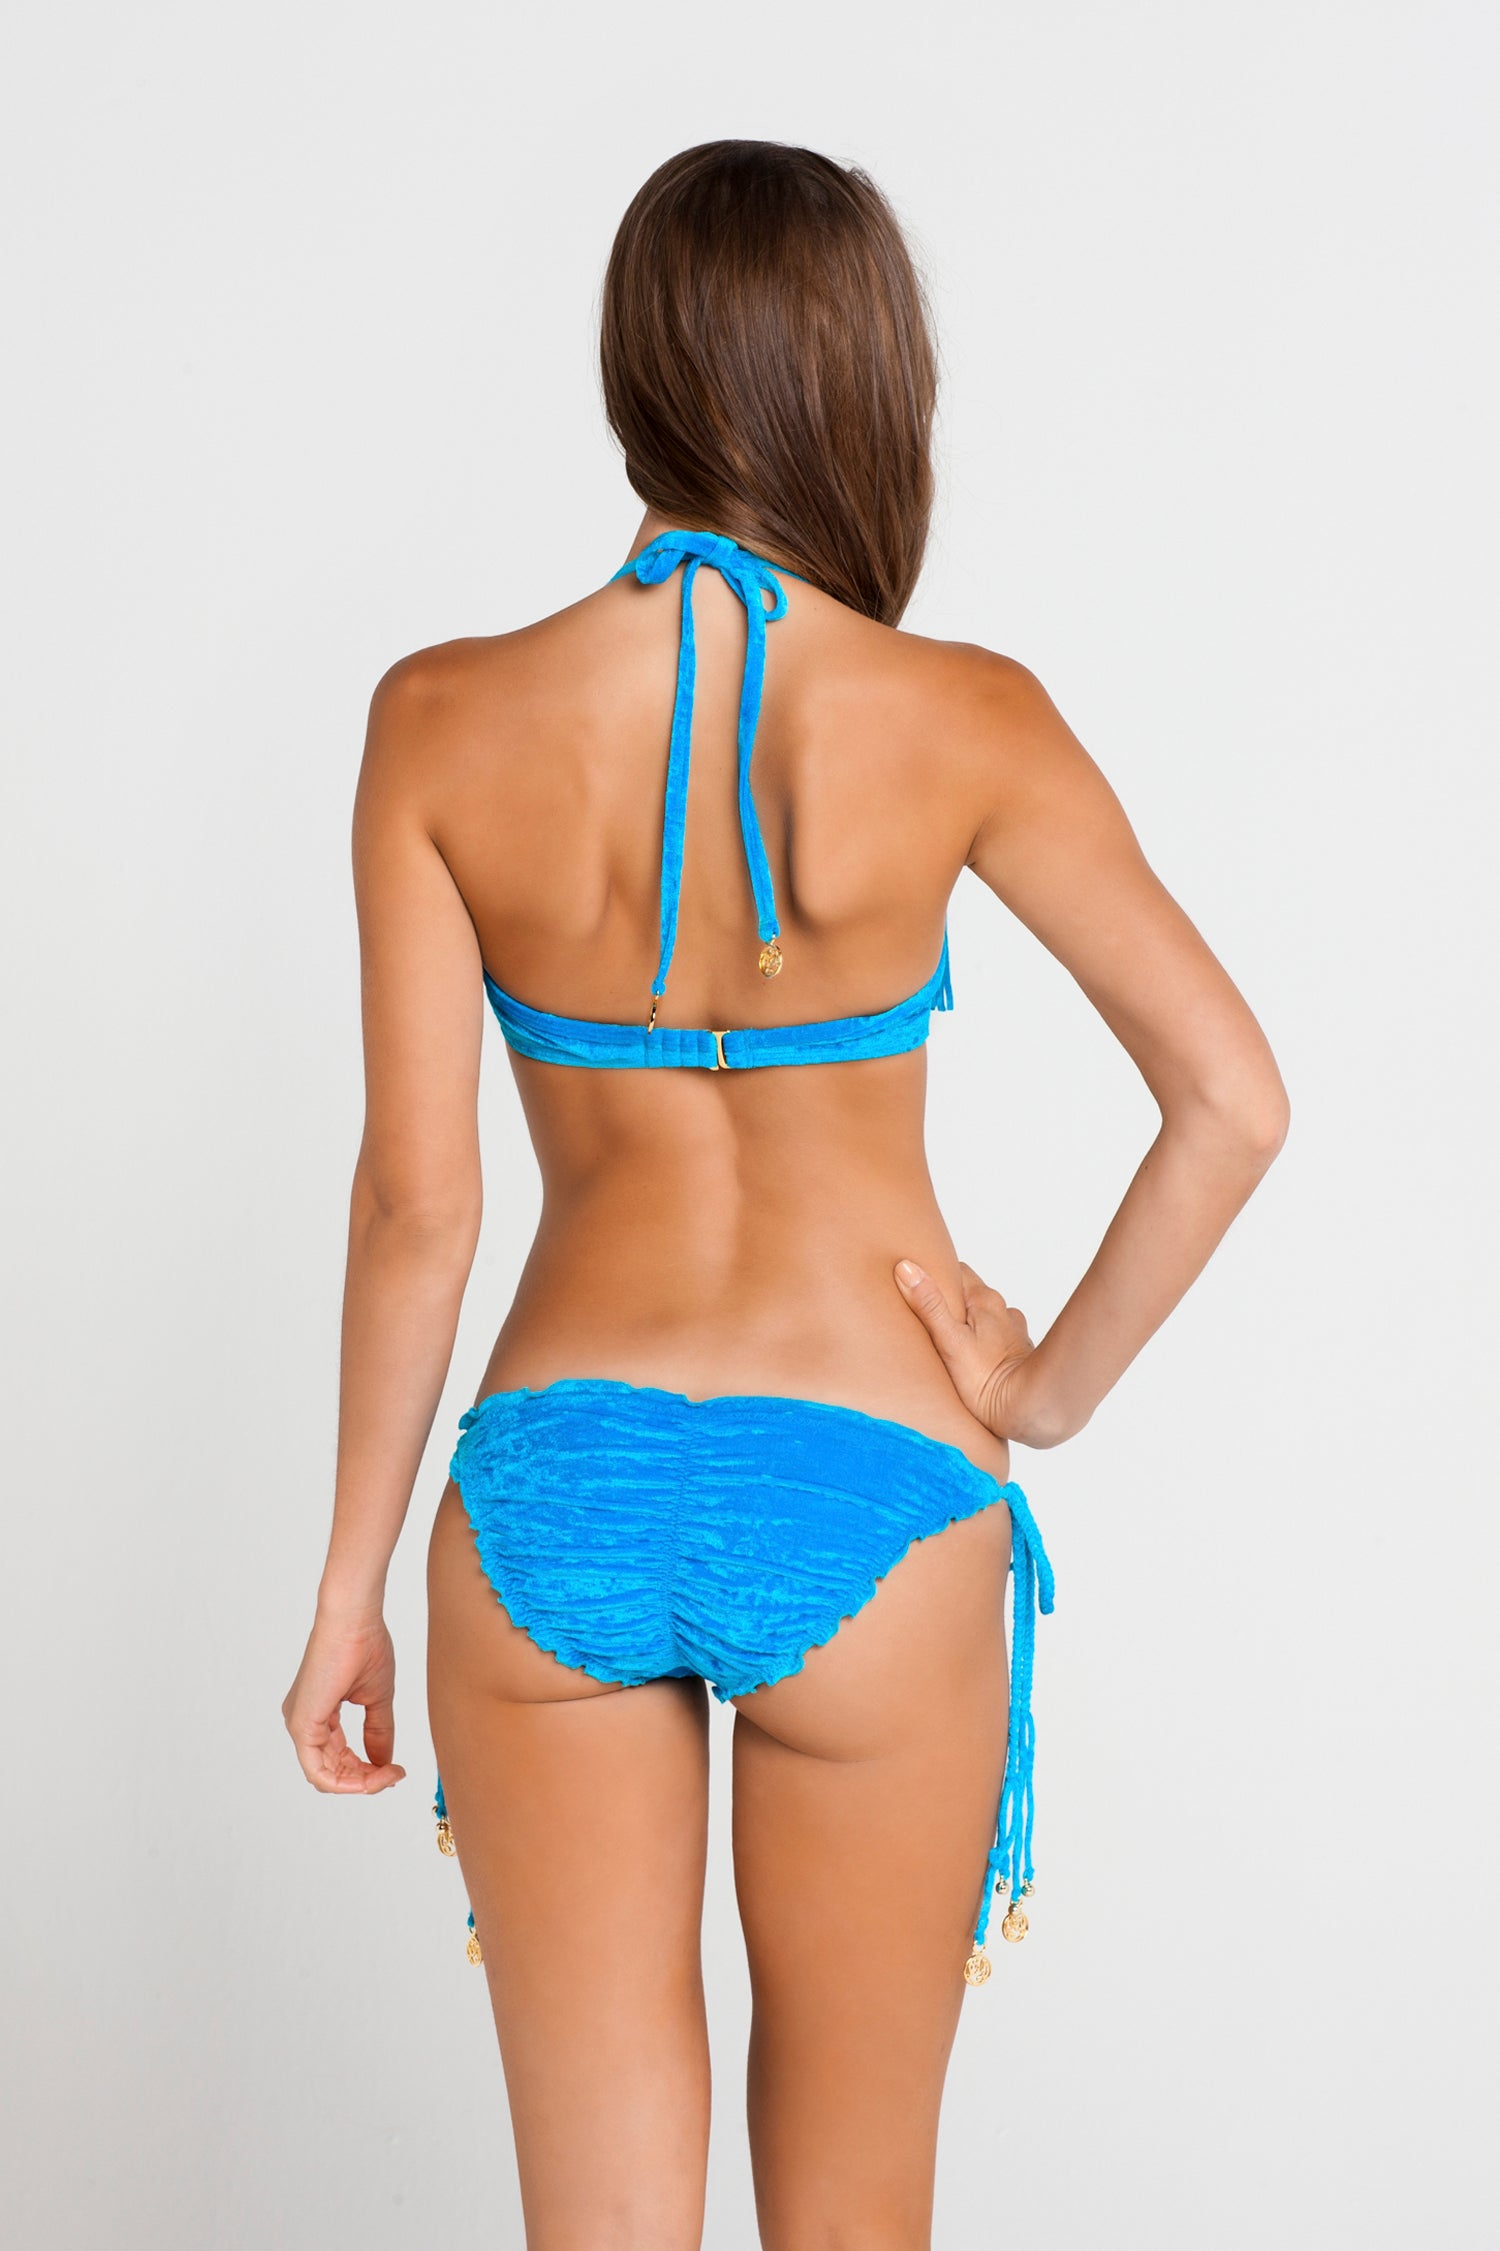 COSQUILLITAS - Plunge Push Up Fringe Underwire Top & Wavey Ruched Back Full Tie Side Bottom • Turquose